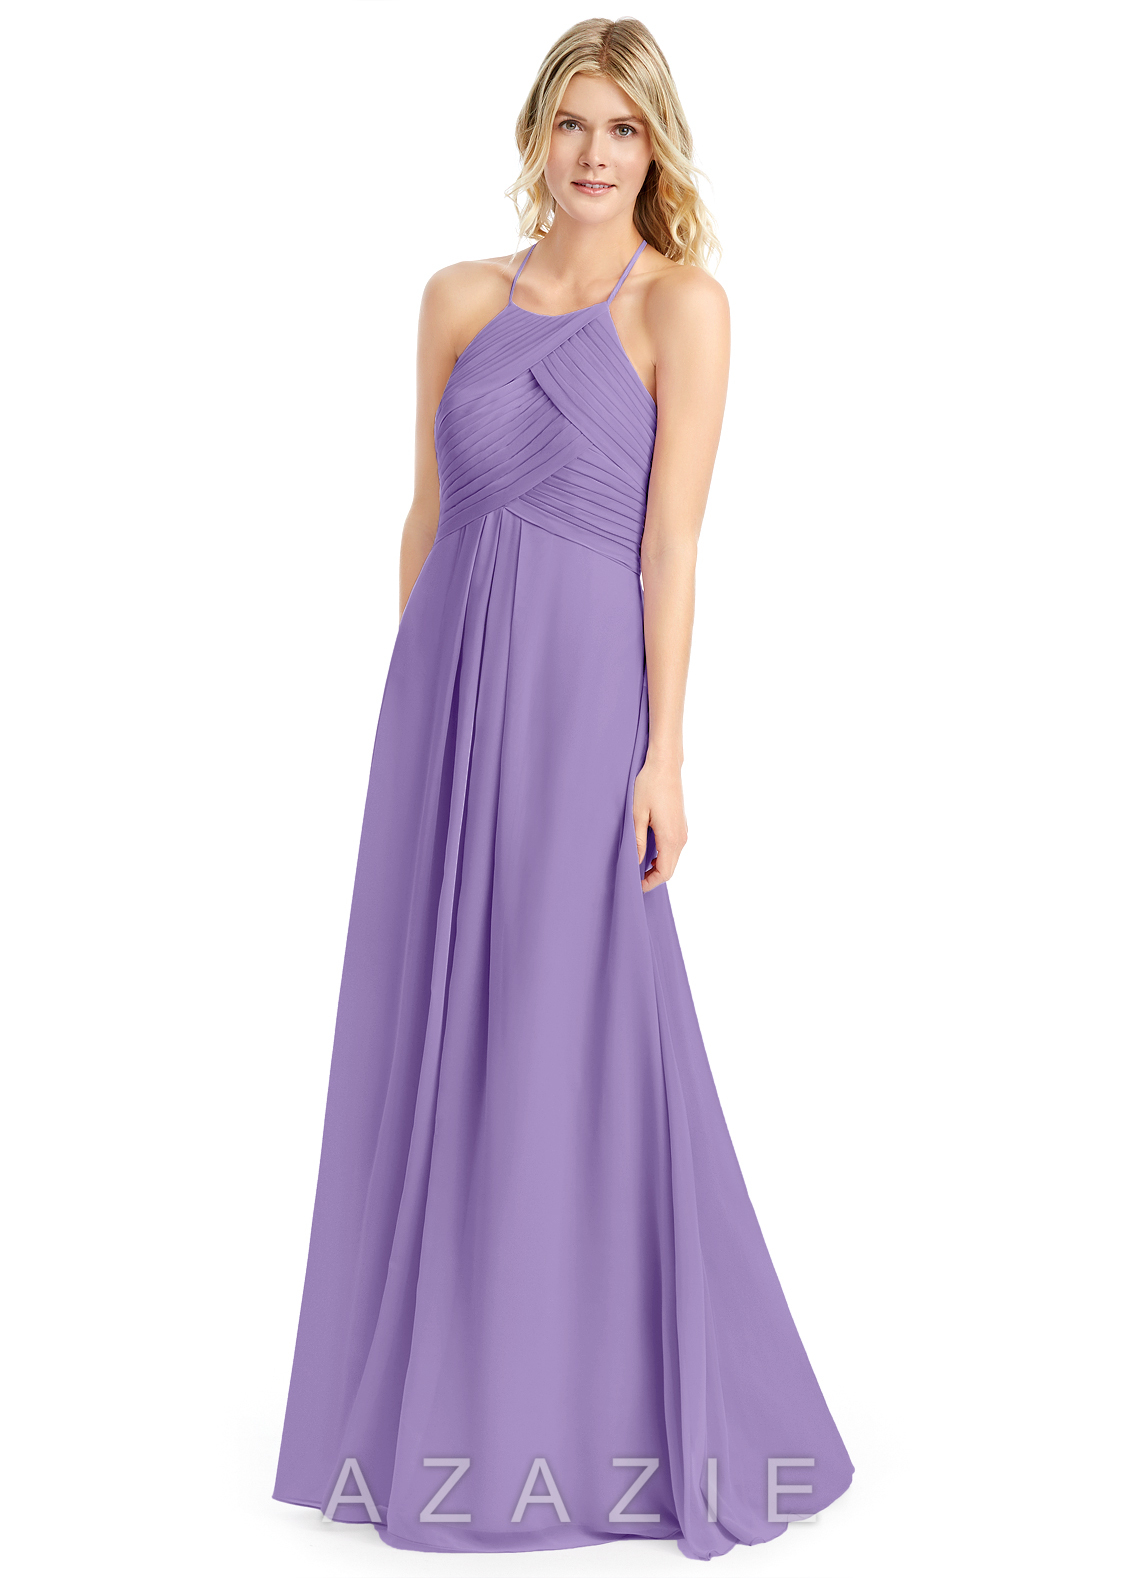 Tahiti Bridesmaid Dresses & Tahiti Gowns | Azazie